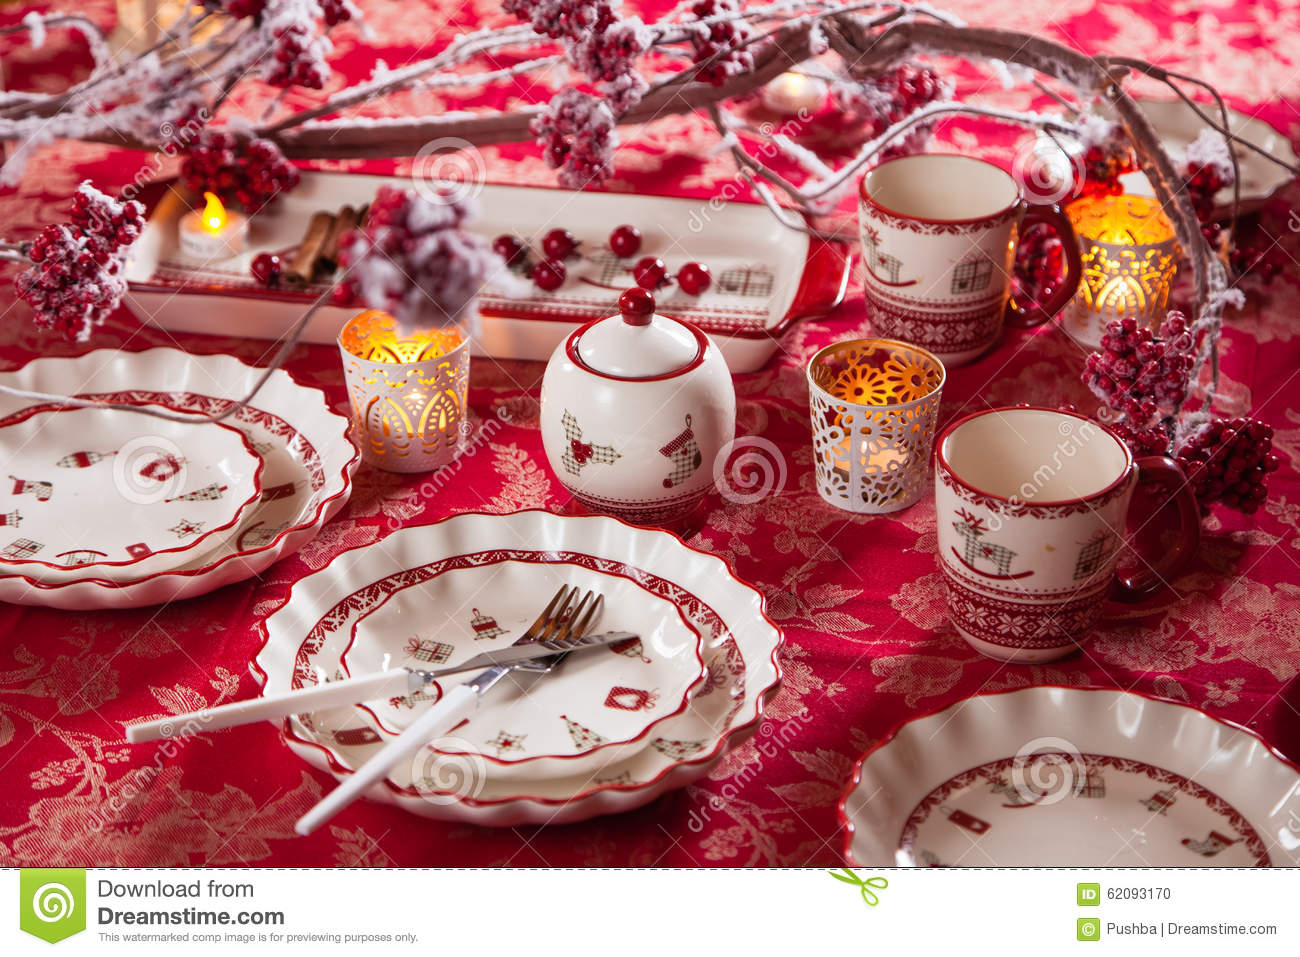 christmas dishes cutlery and decor in red and white stock. Black Bedroom Furniture Sets. Home Design Ideas